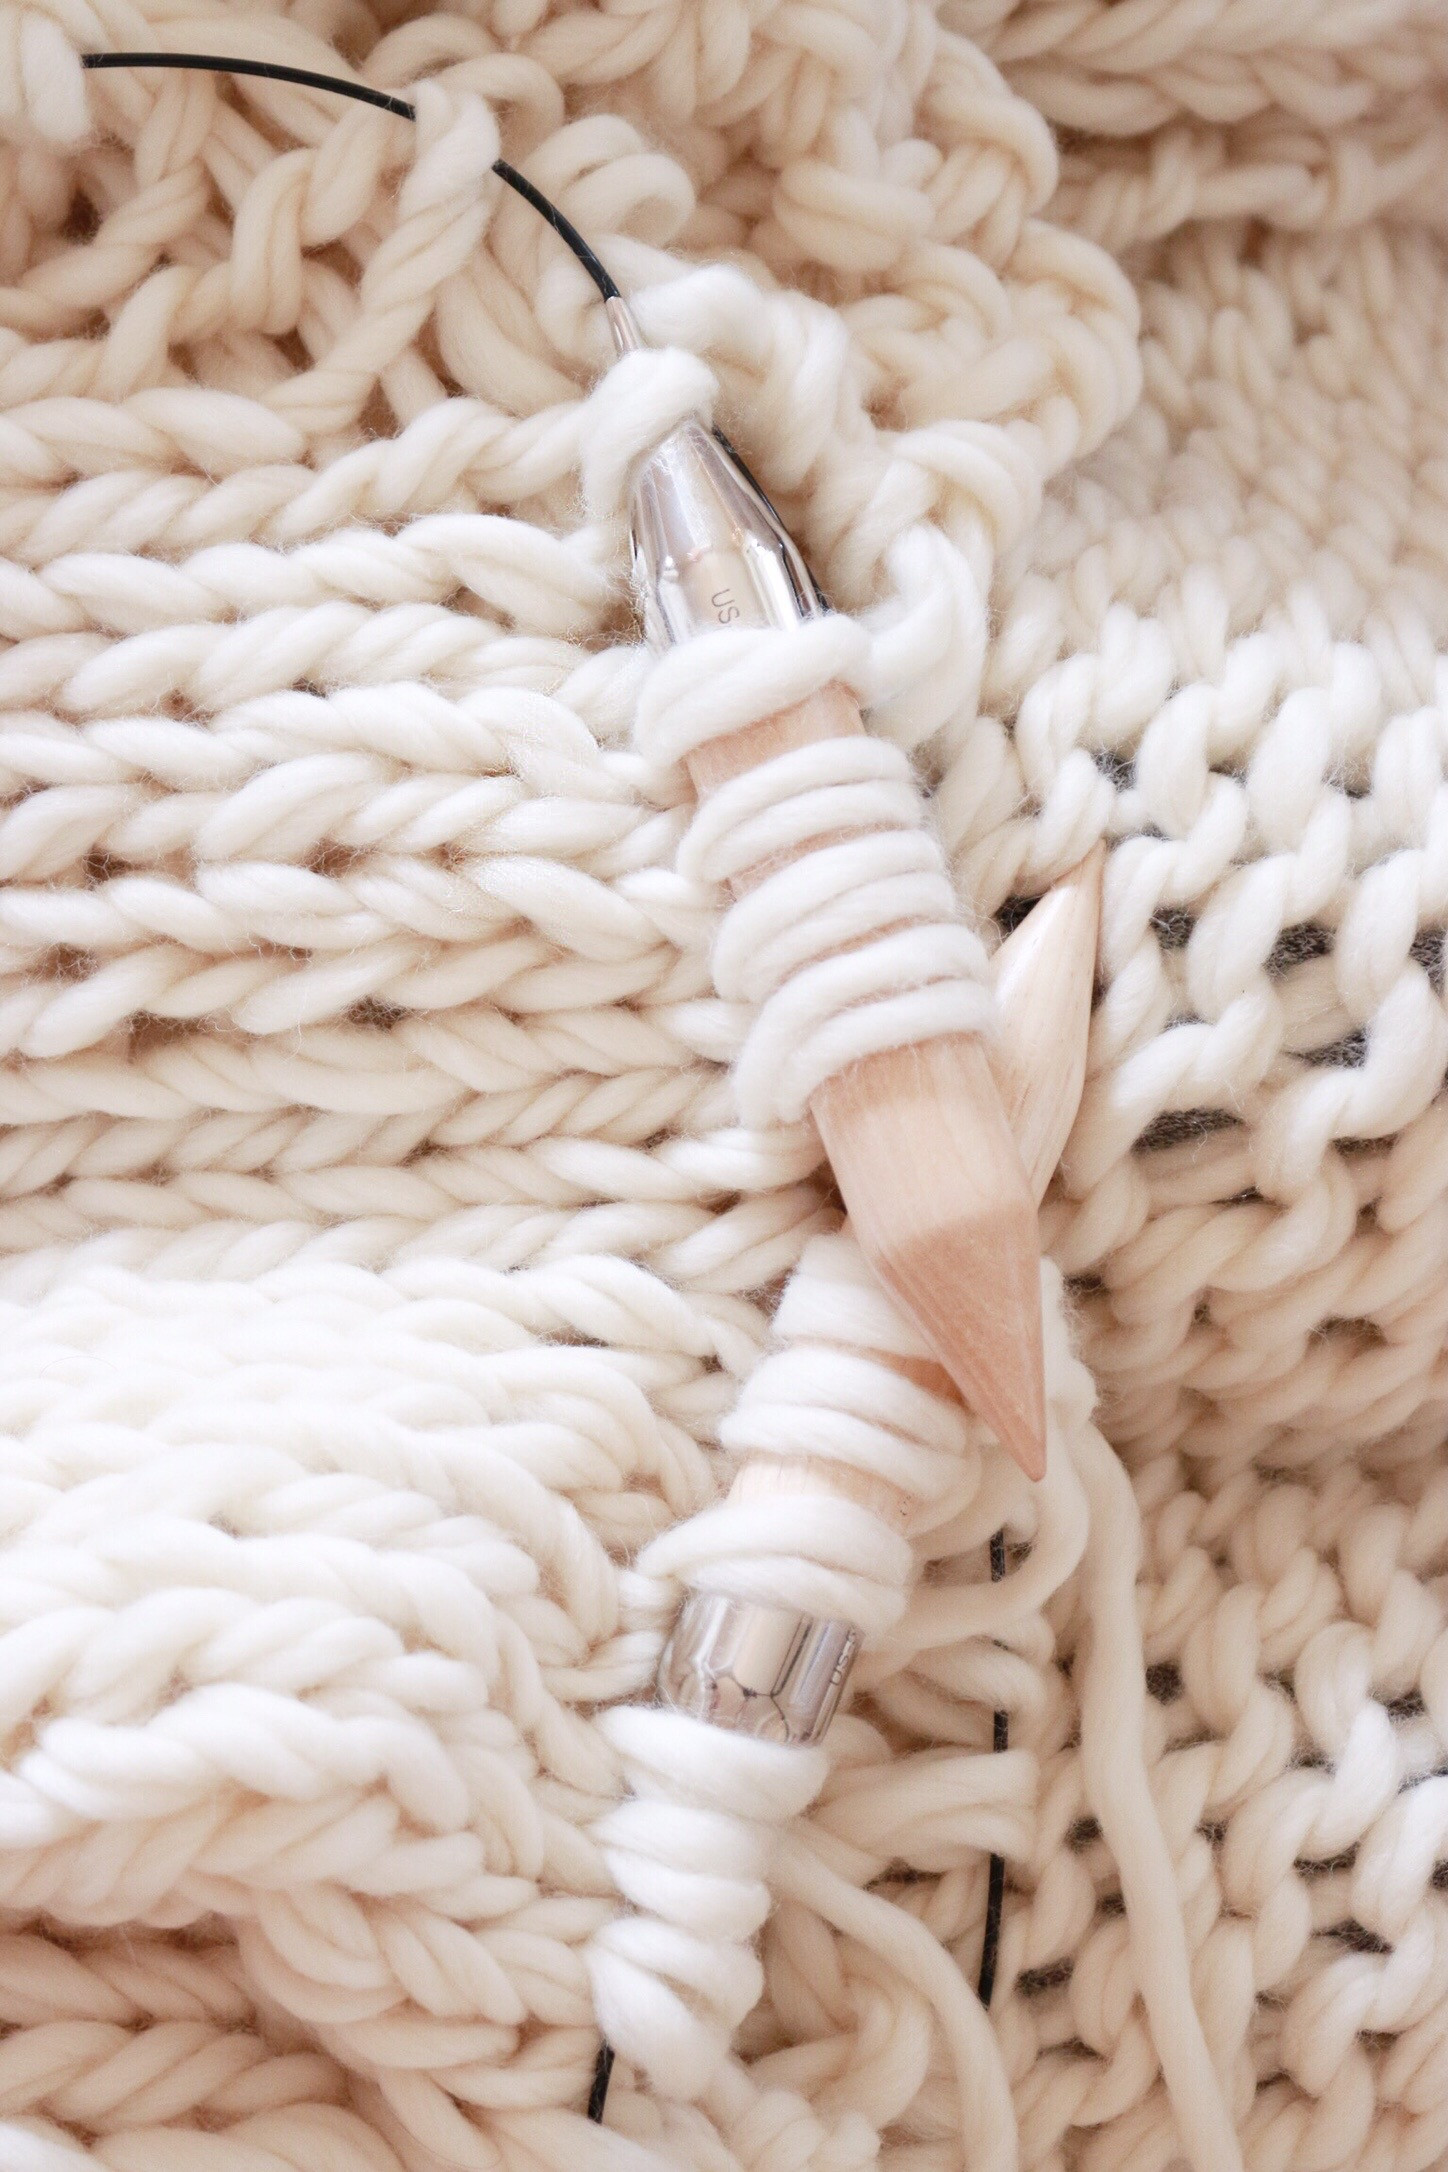 Chunky Knit Throw Elegant How to Knit A Chunky Wool Blanket Free Able Of Superb 50 Pics Chunky Knit Throw